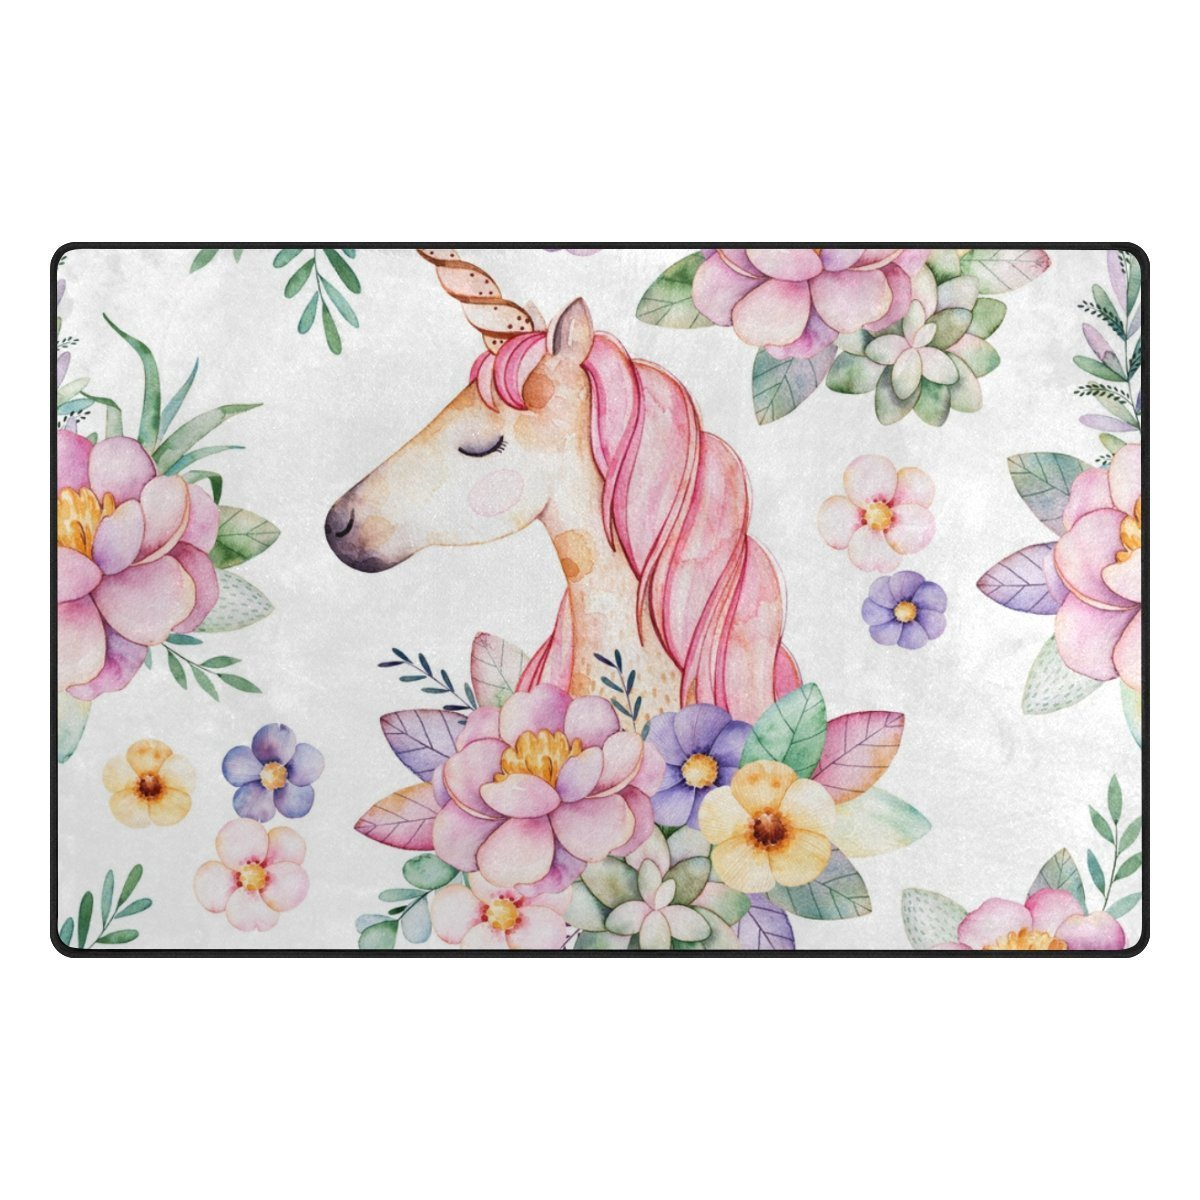 Lovely Unicorn with Flowers Leaves Soft Foam Door Mat for Children Non Skid Game Area Rugs Kids Bedroom Playroom Nursery Decor (23.6'x15.7', L x W) best bags